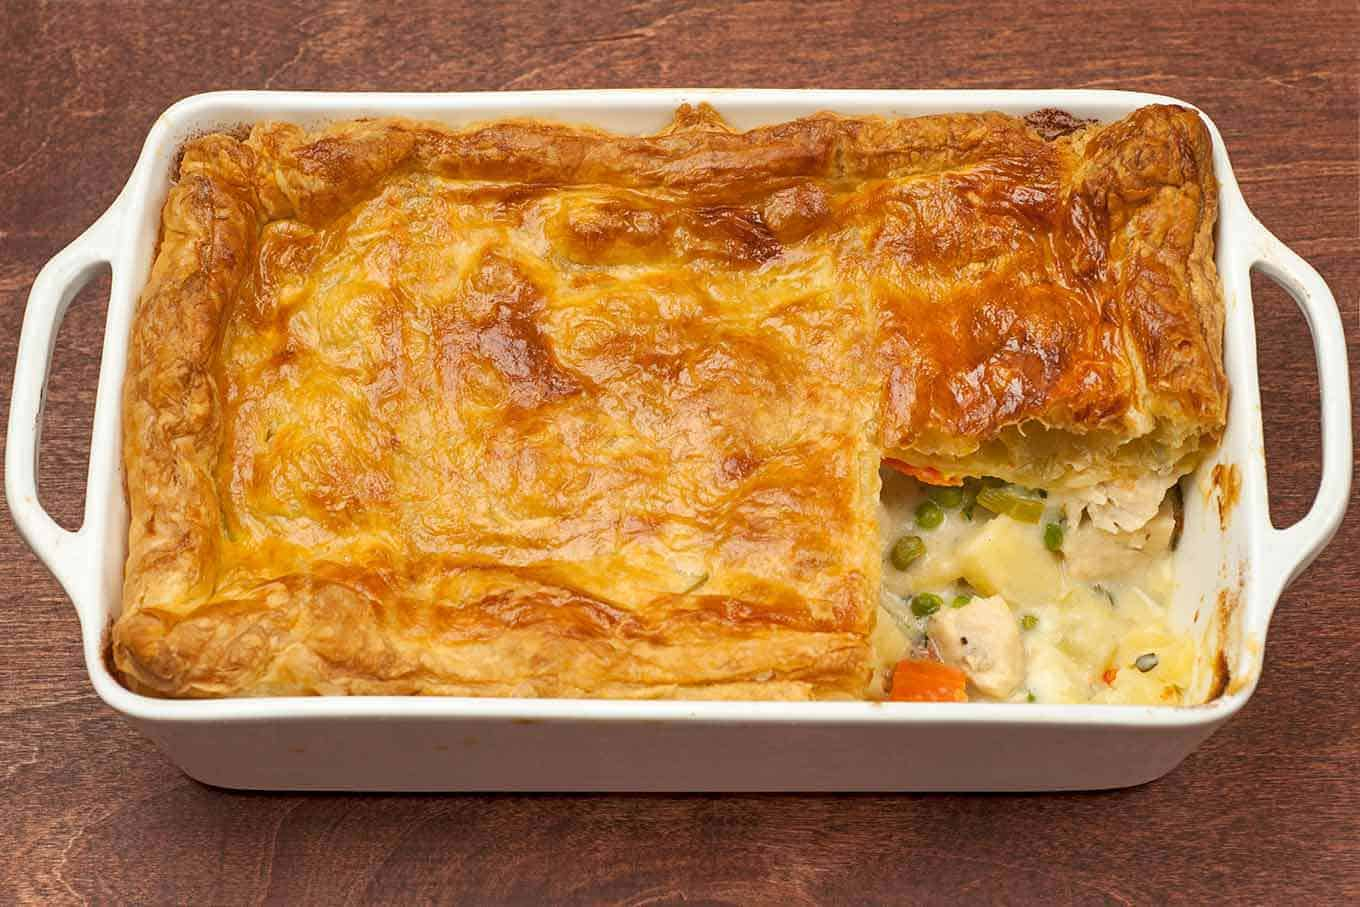 Chicken pot pie topped with puff pastry in a baking dish